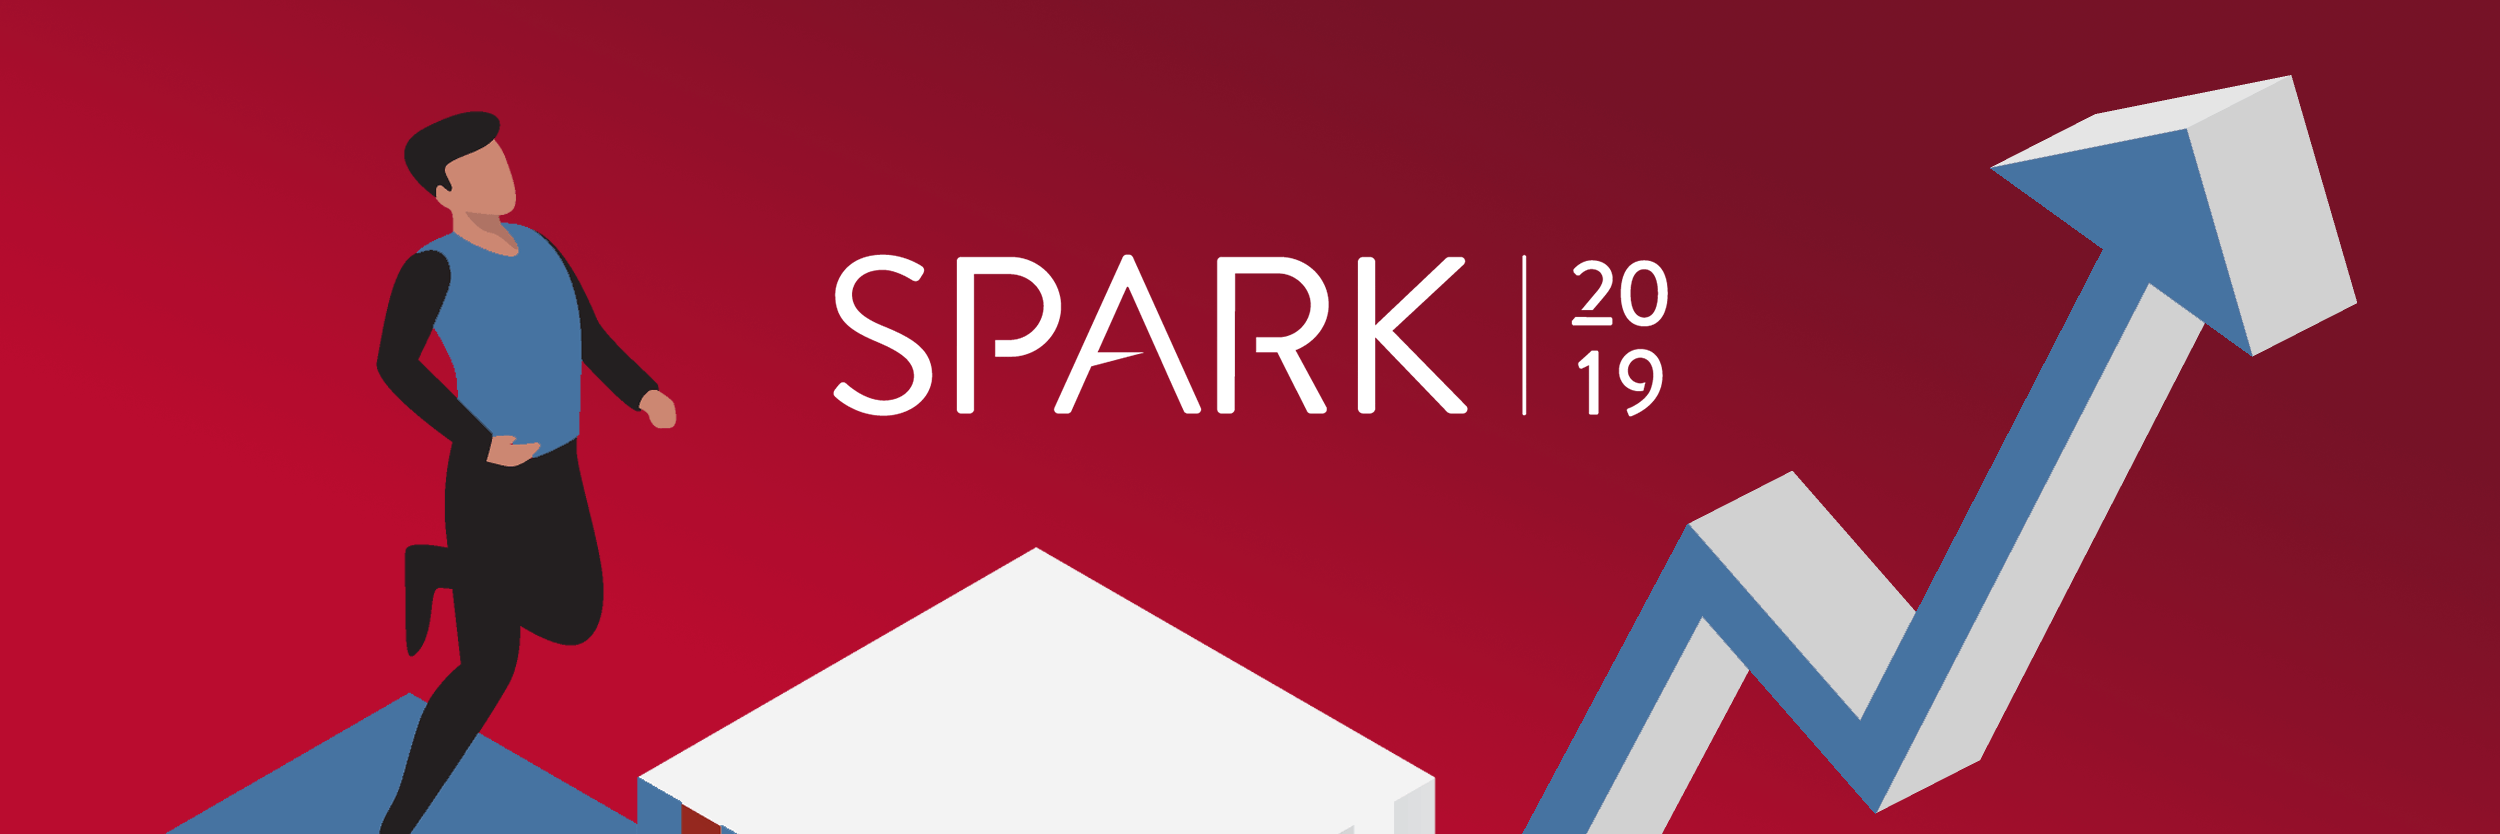 SPARK 2019 | Five years of employee ideas